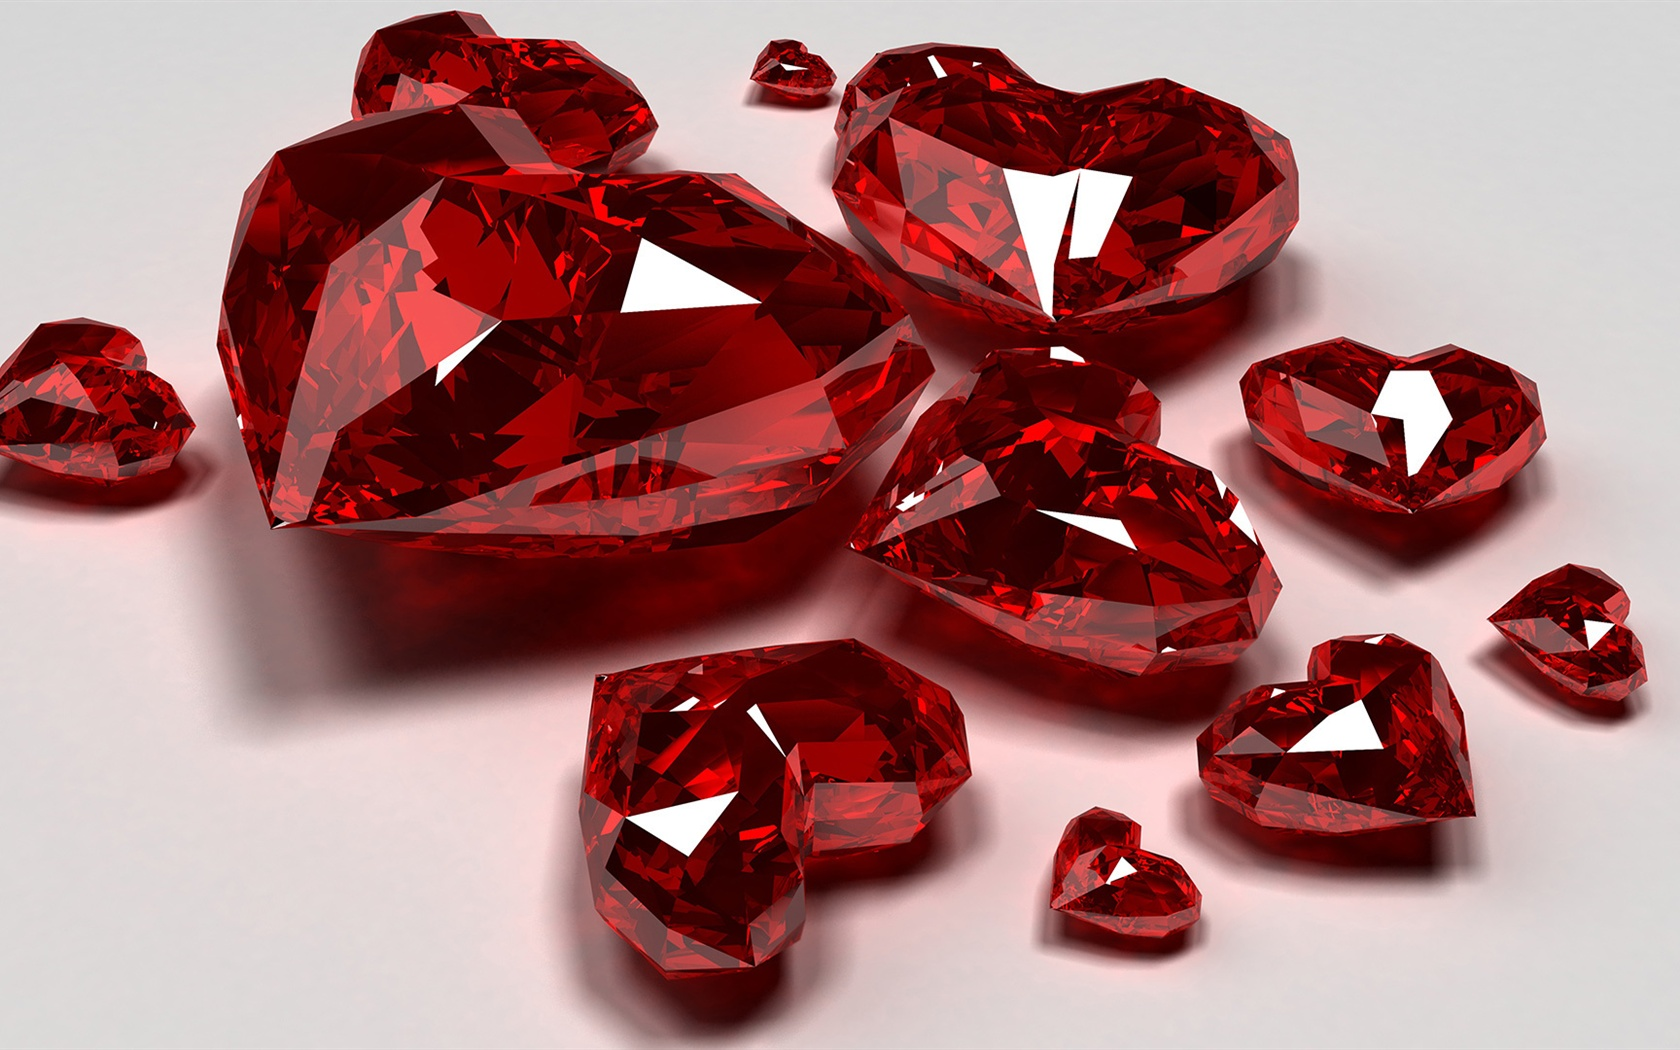 Jewelry of ruby close-up wallpaper - 1680x1050